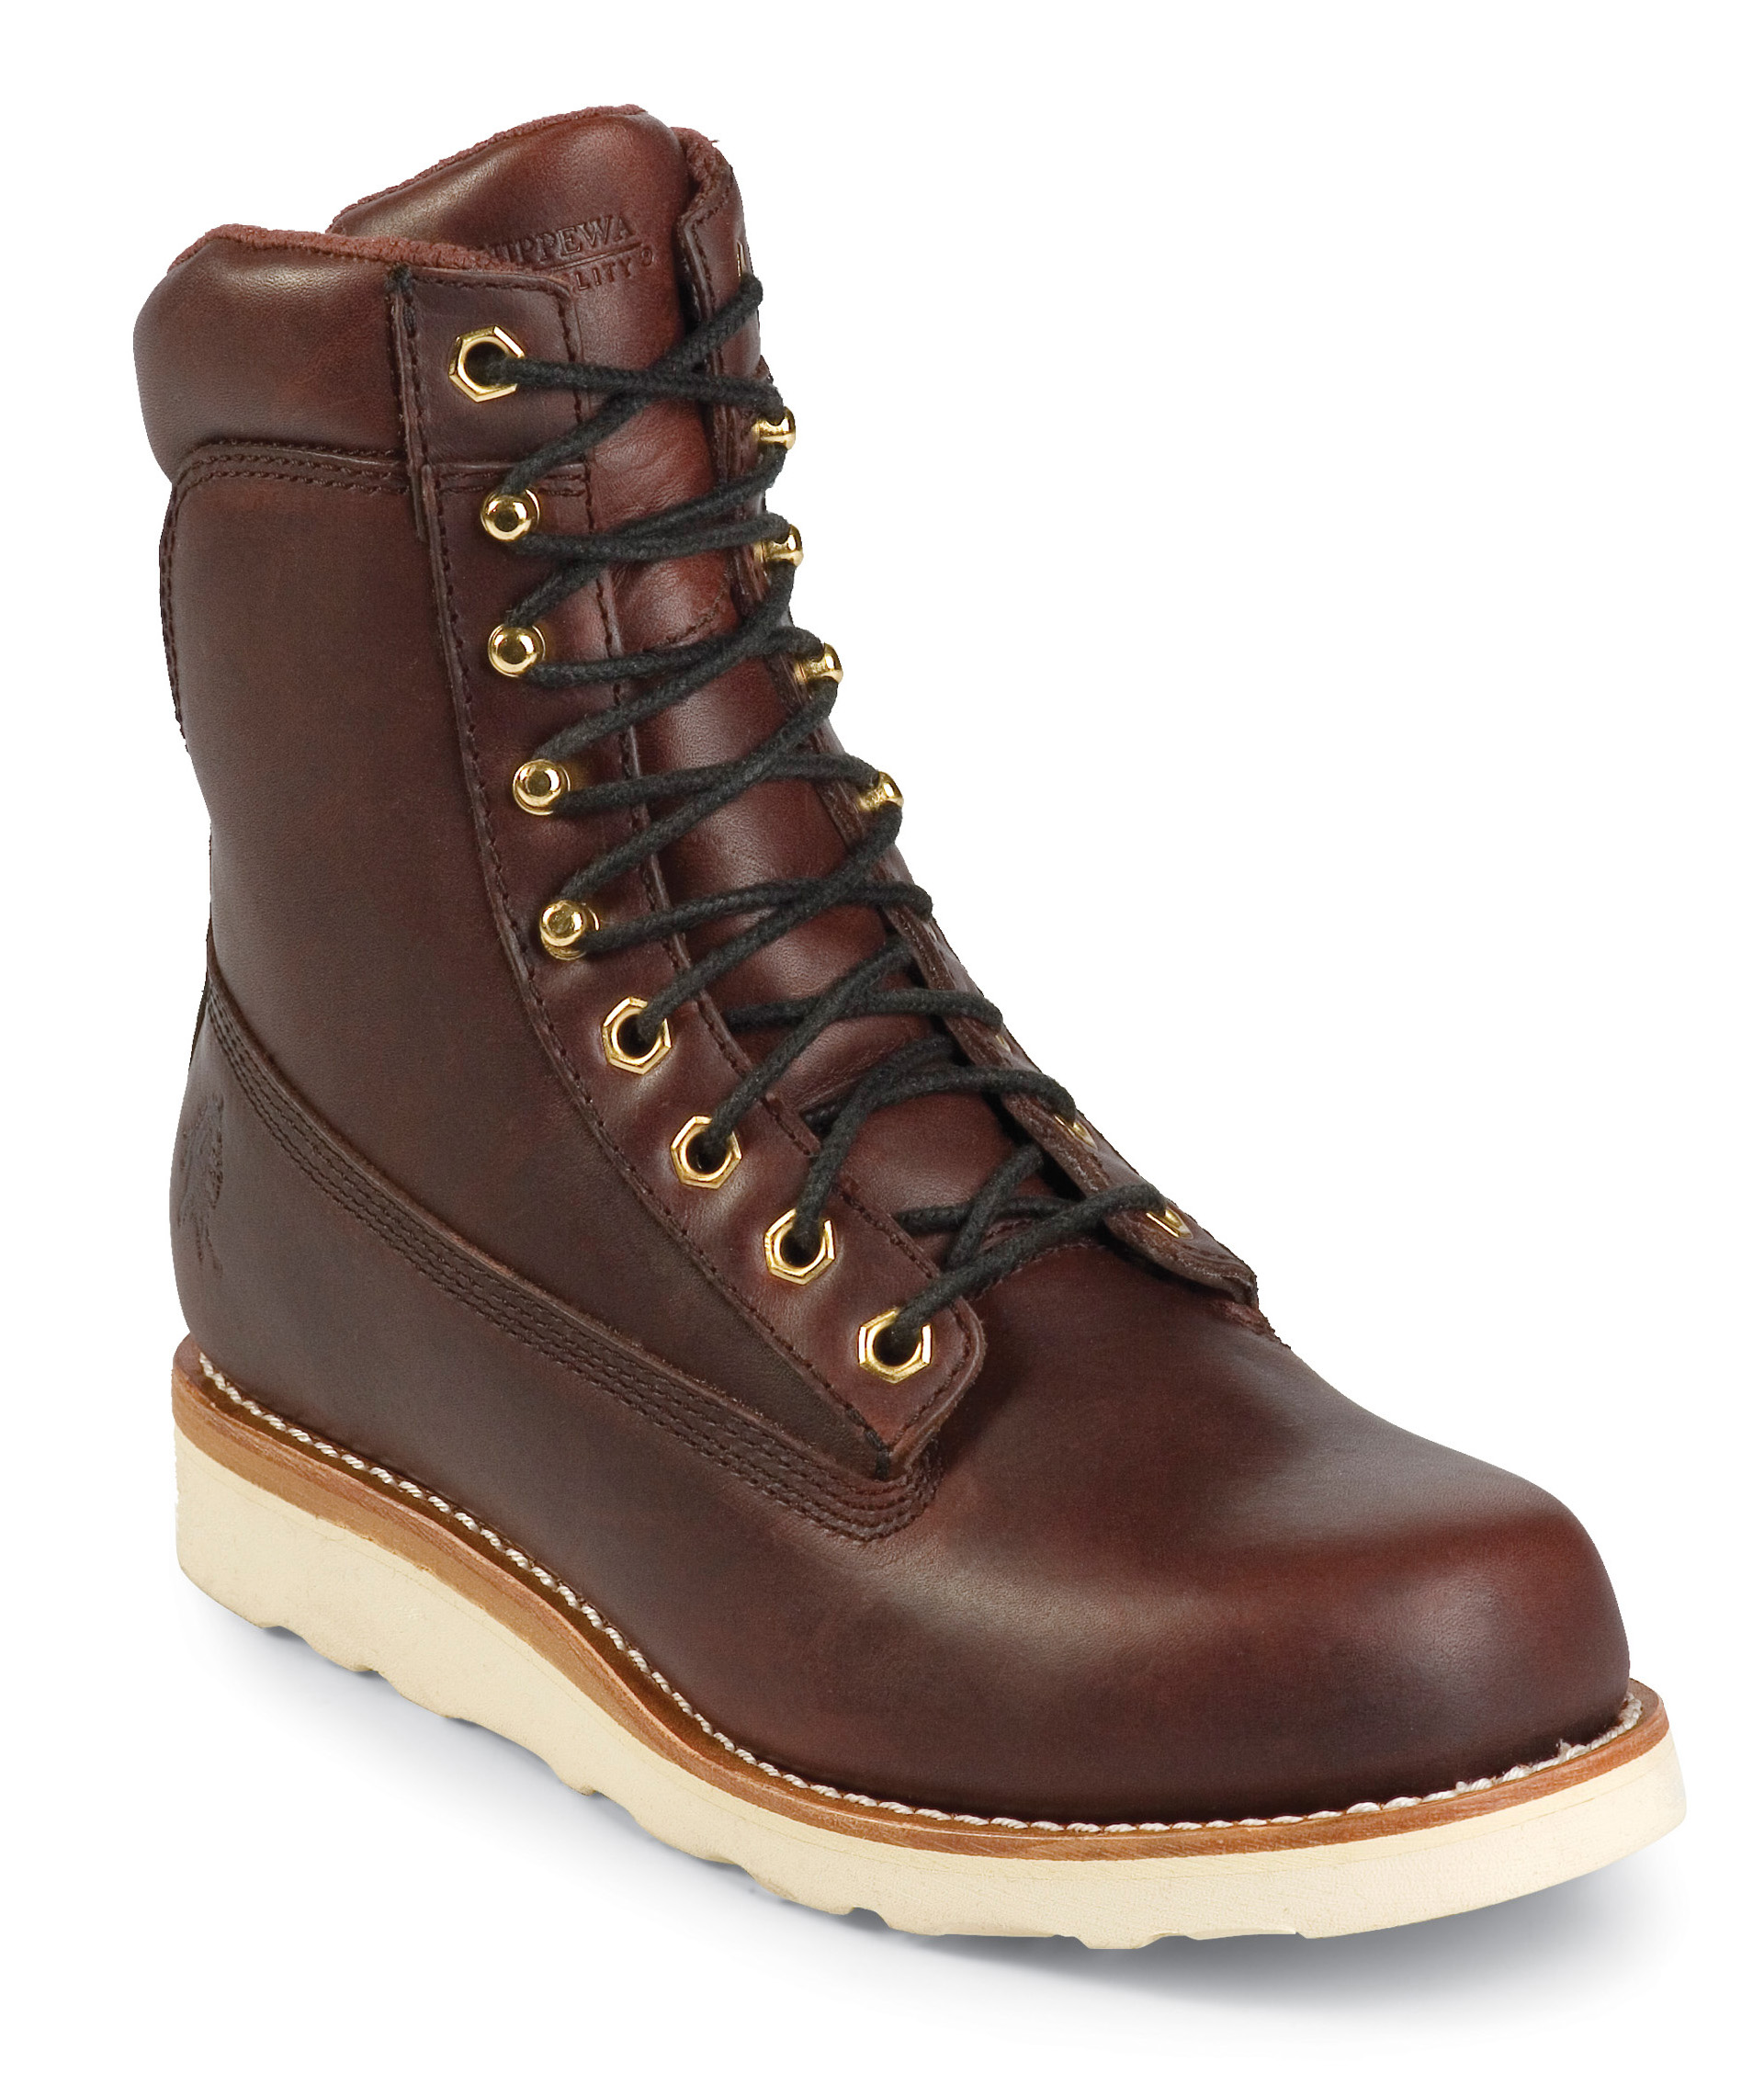 "Chippewa Men's Chippewa Utility Wedge Work Boots 8"" Oiled Redwood Leather 72055 (D, M) at Sears.com"